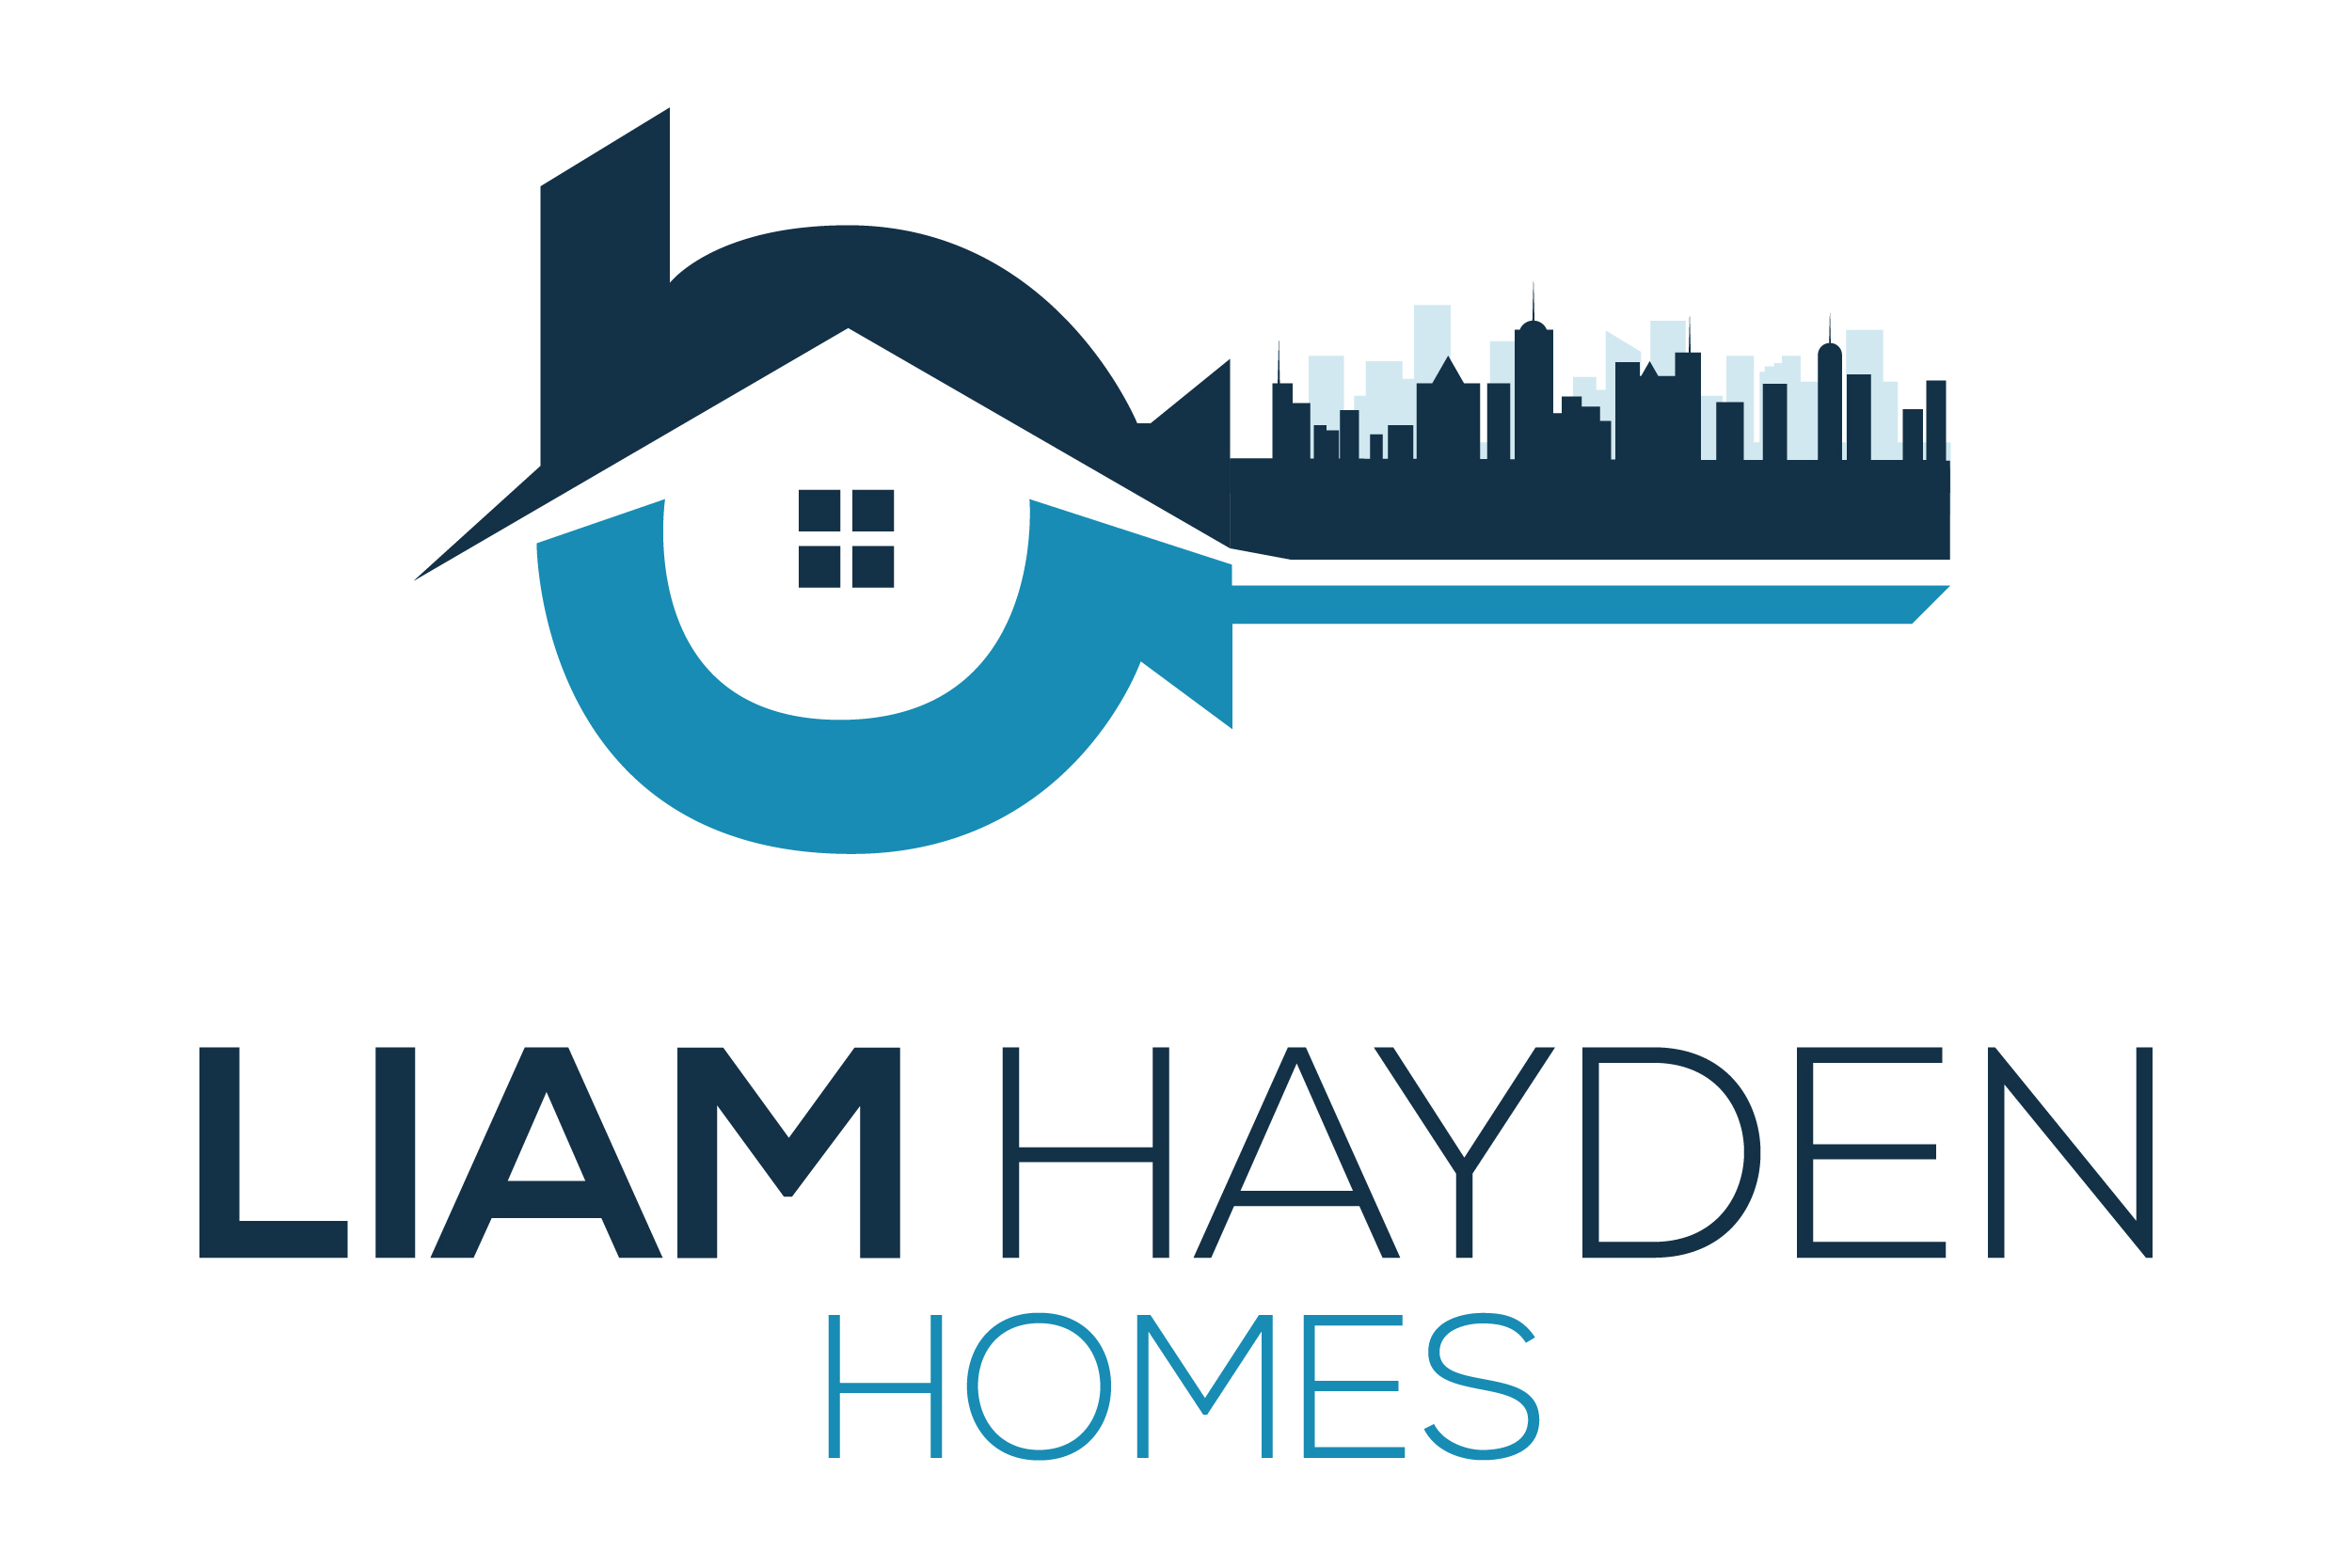 Liam Hayden Homes